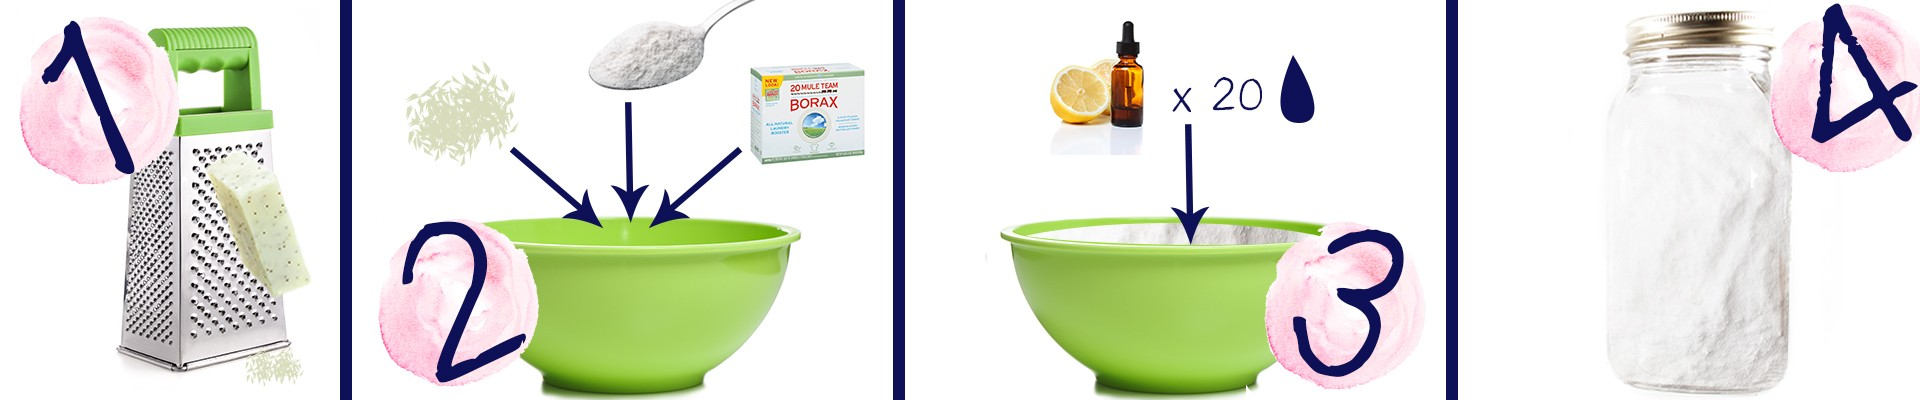 Homemade laundry detergent how-to